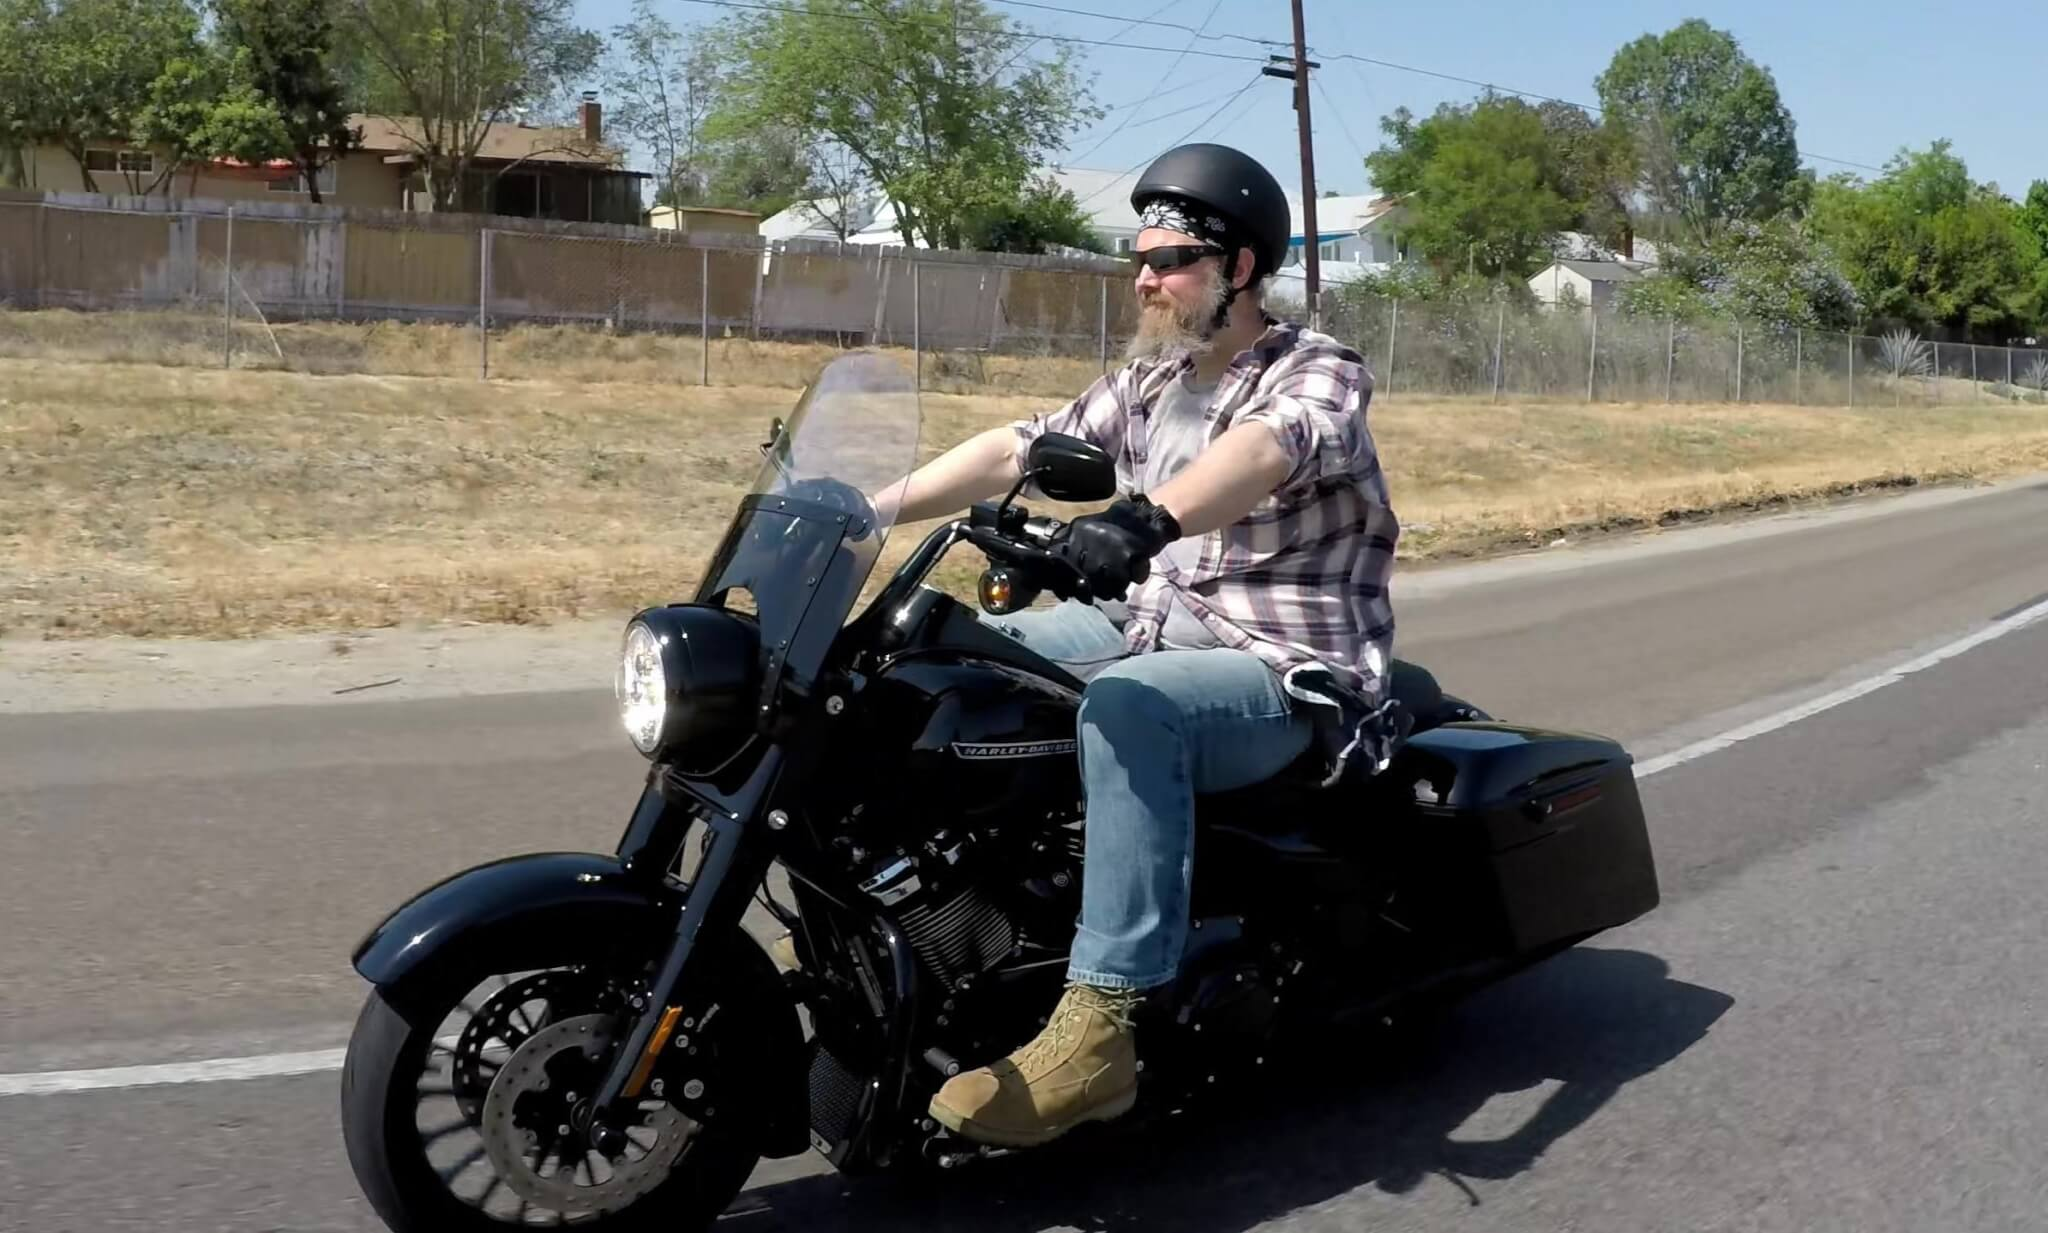 Opie From Sons Of Anarchy Rides The Road King